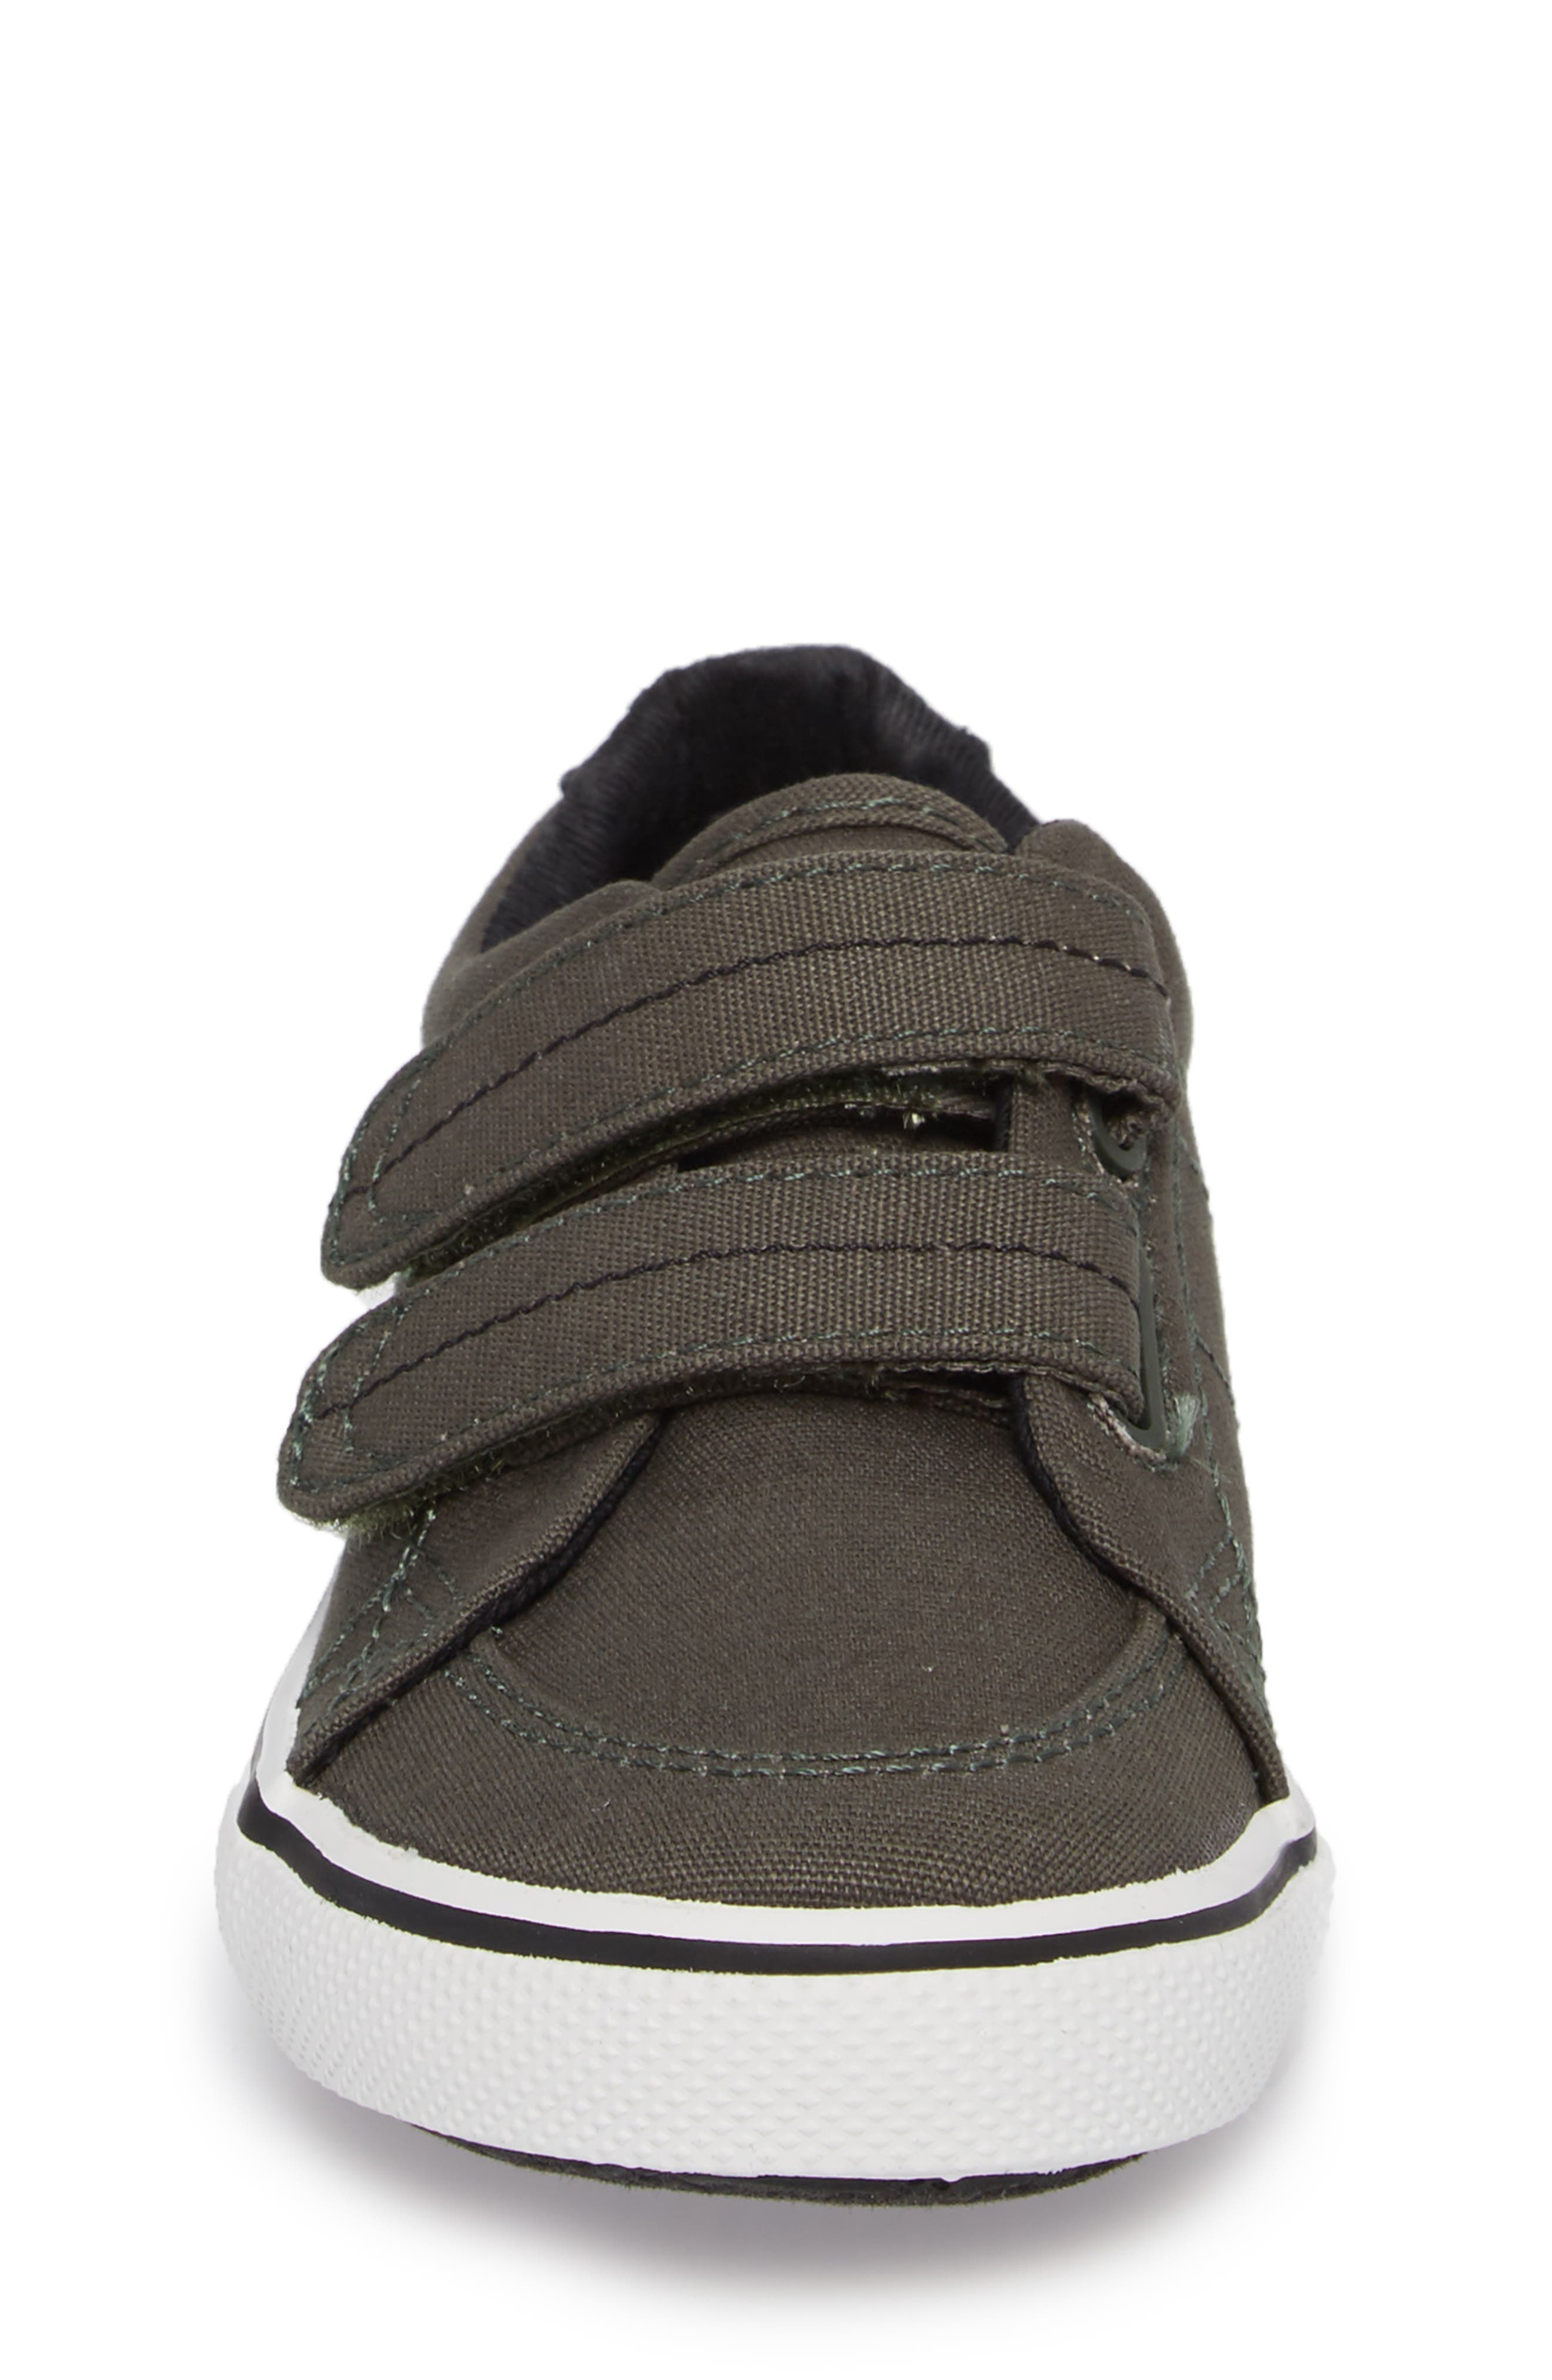 Sperry Top-Sider<sup>®</sup> Kids 'Halyard' Sneaker,                             Alternate thumbnail 17, color,